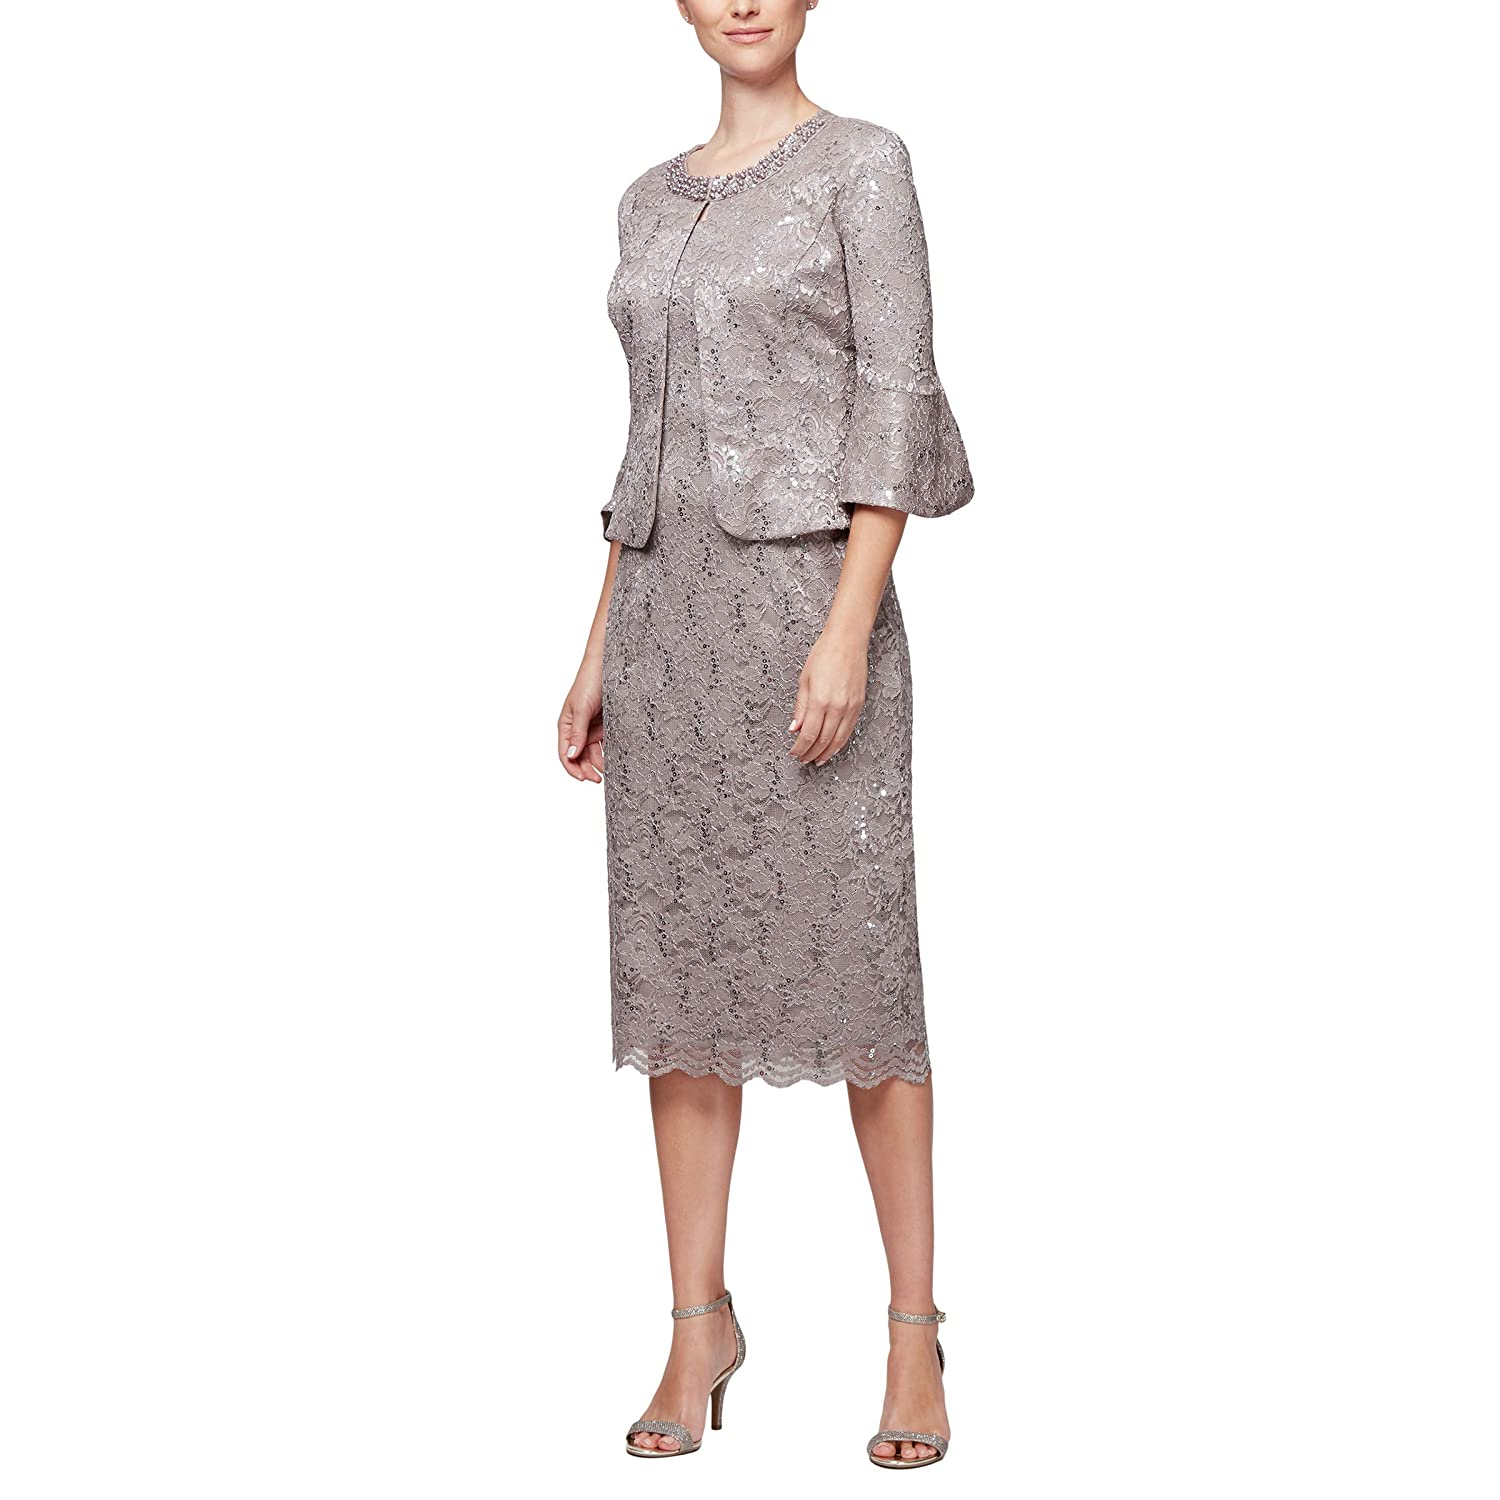 5f433d29d18 Top1  Alex Evenings Women s Tea Length Dress and Jacket (Petite and Regular  Sizes)